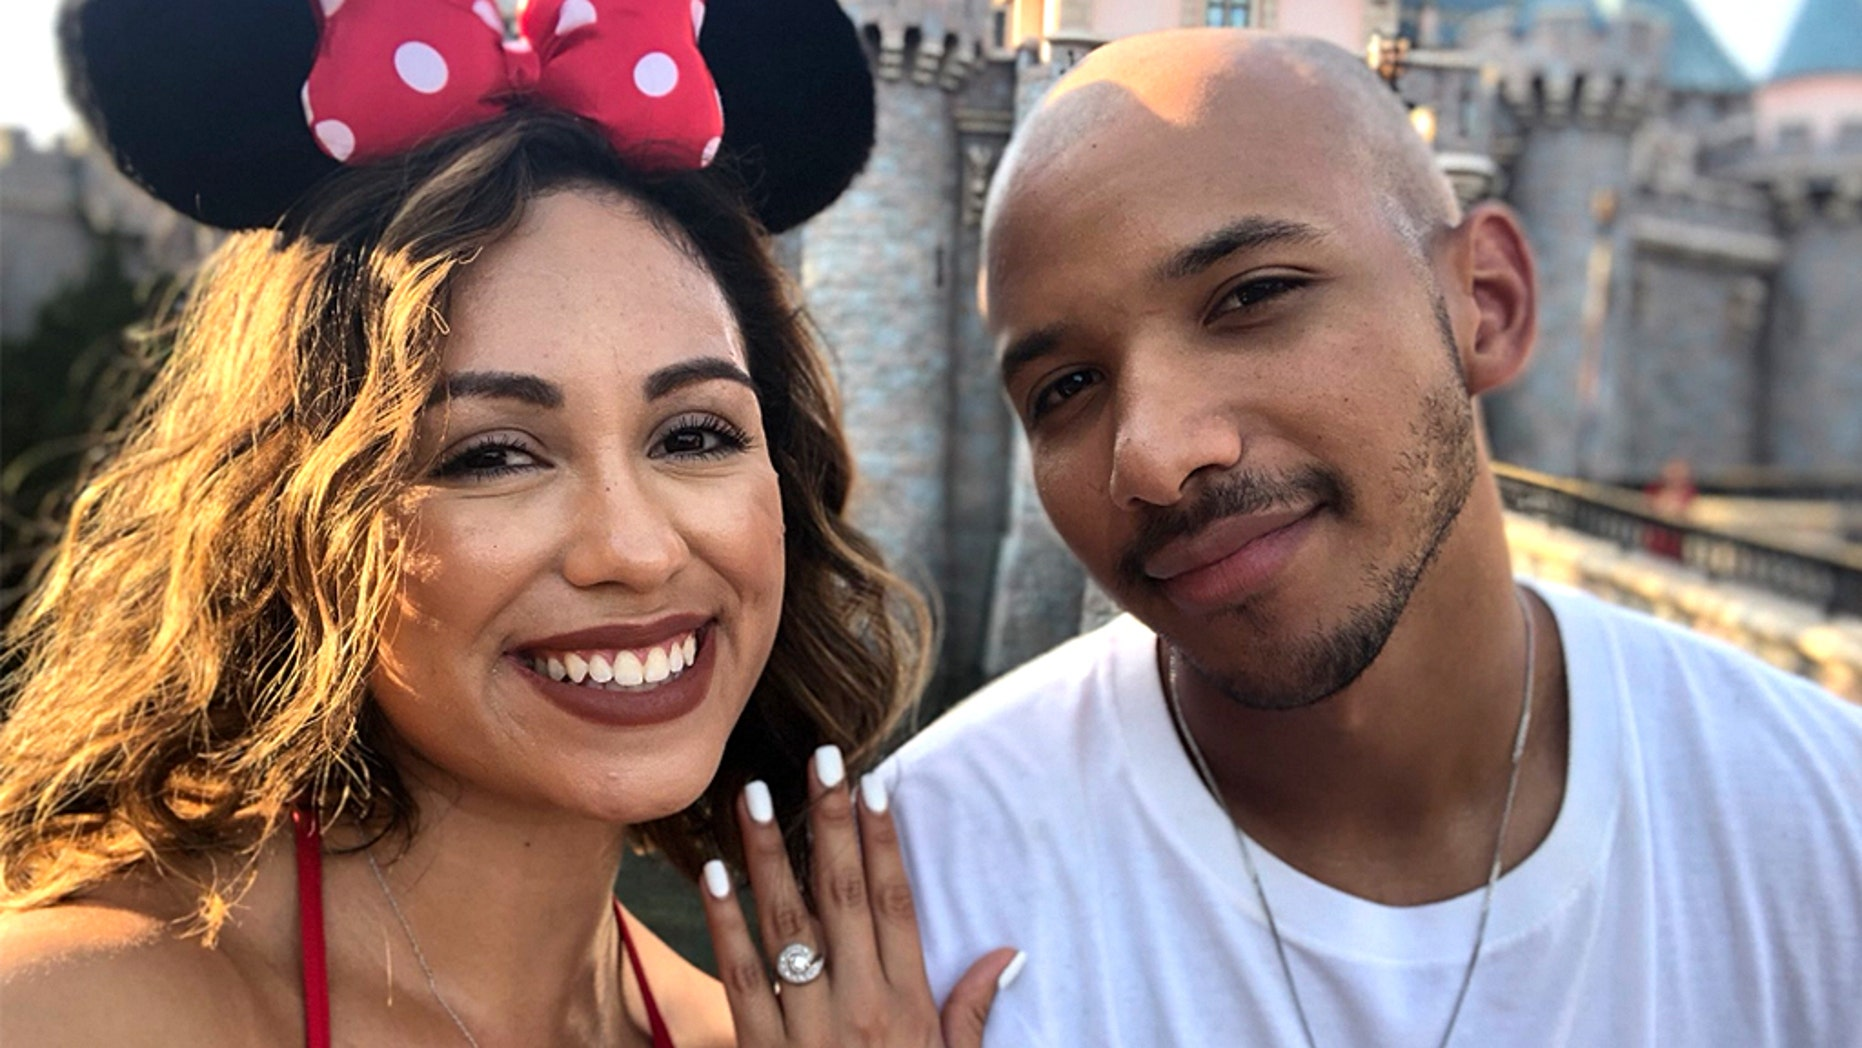 The pair got engaged at Disneyland and their pictures are going viral.